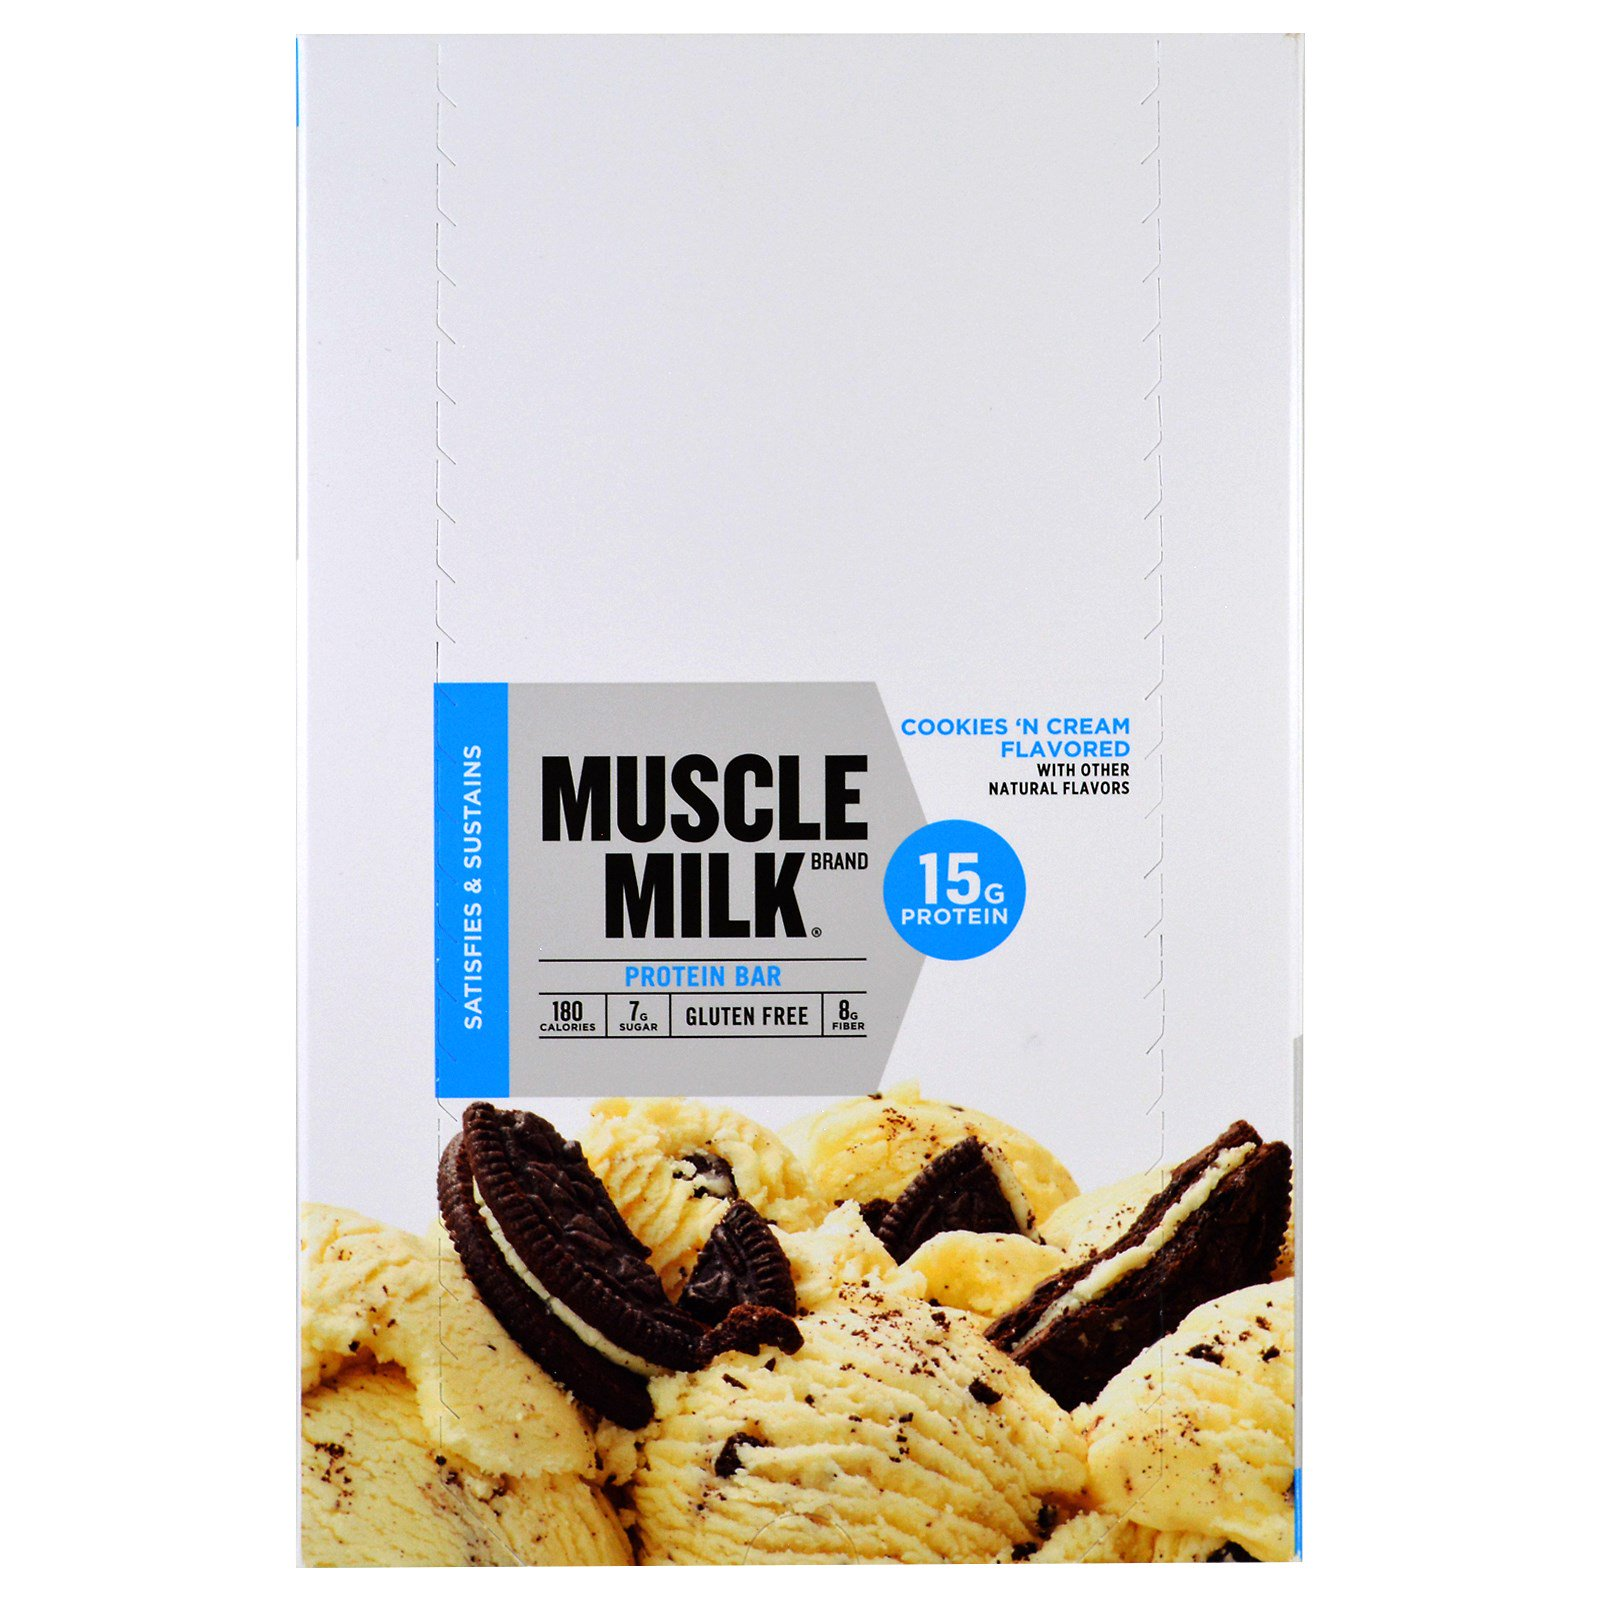 Cytosport, Inc, Muscle Milk, Protein Bar, Cookies 'N Cream, 12 Bars, 1.76 oz (50 g) Each